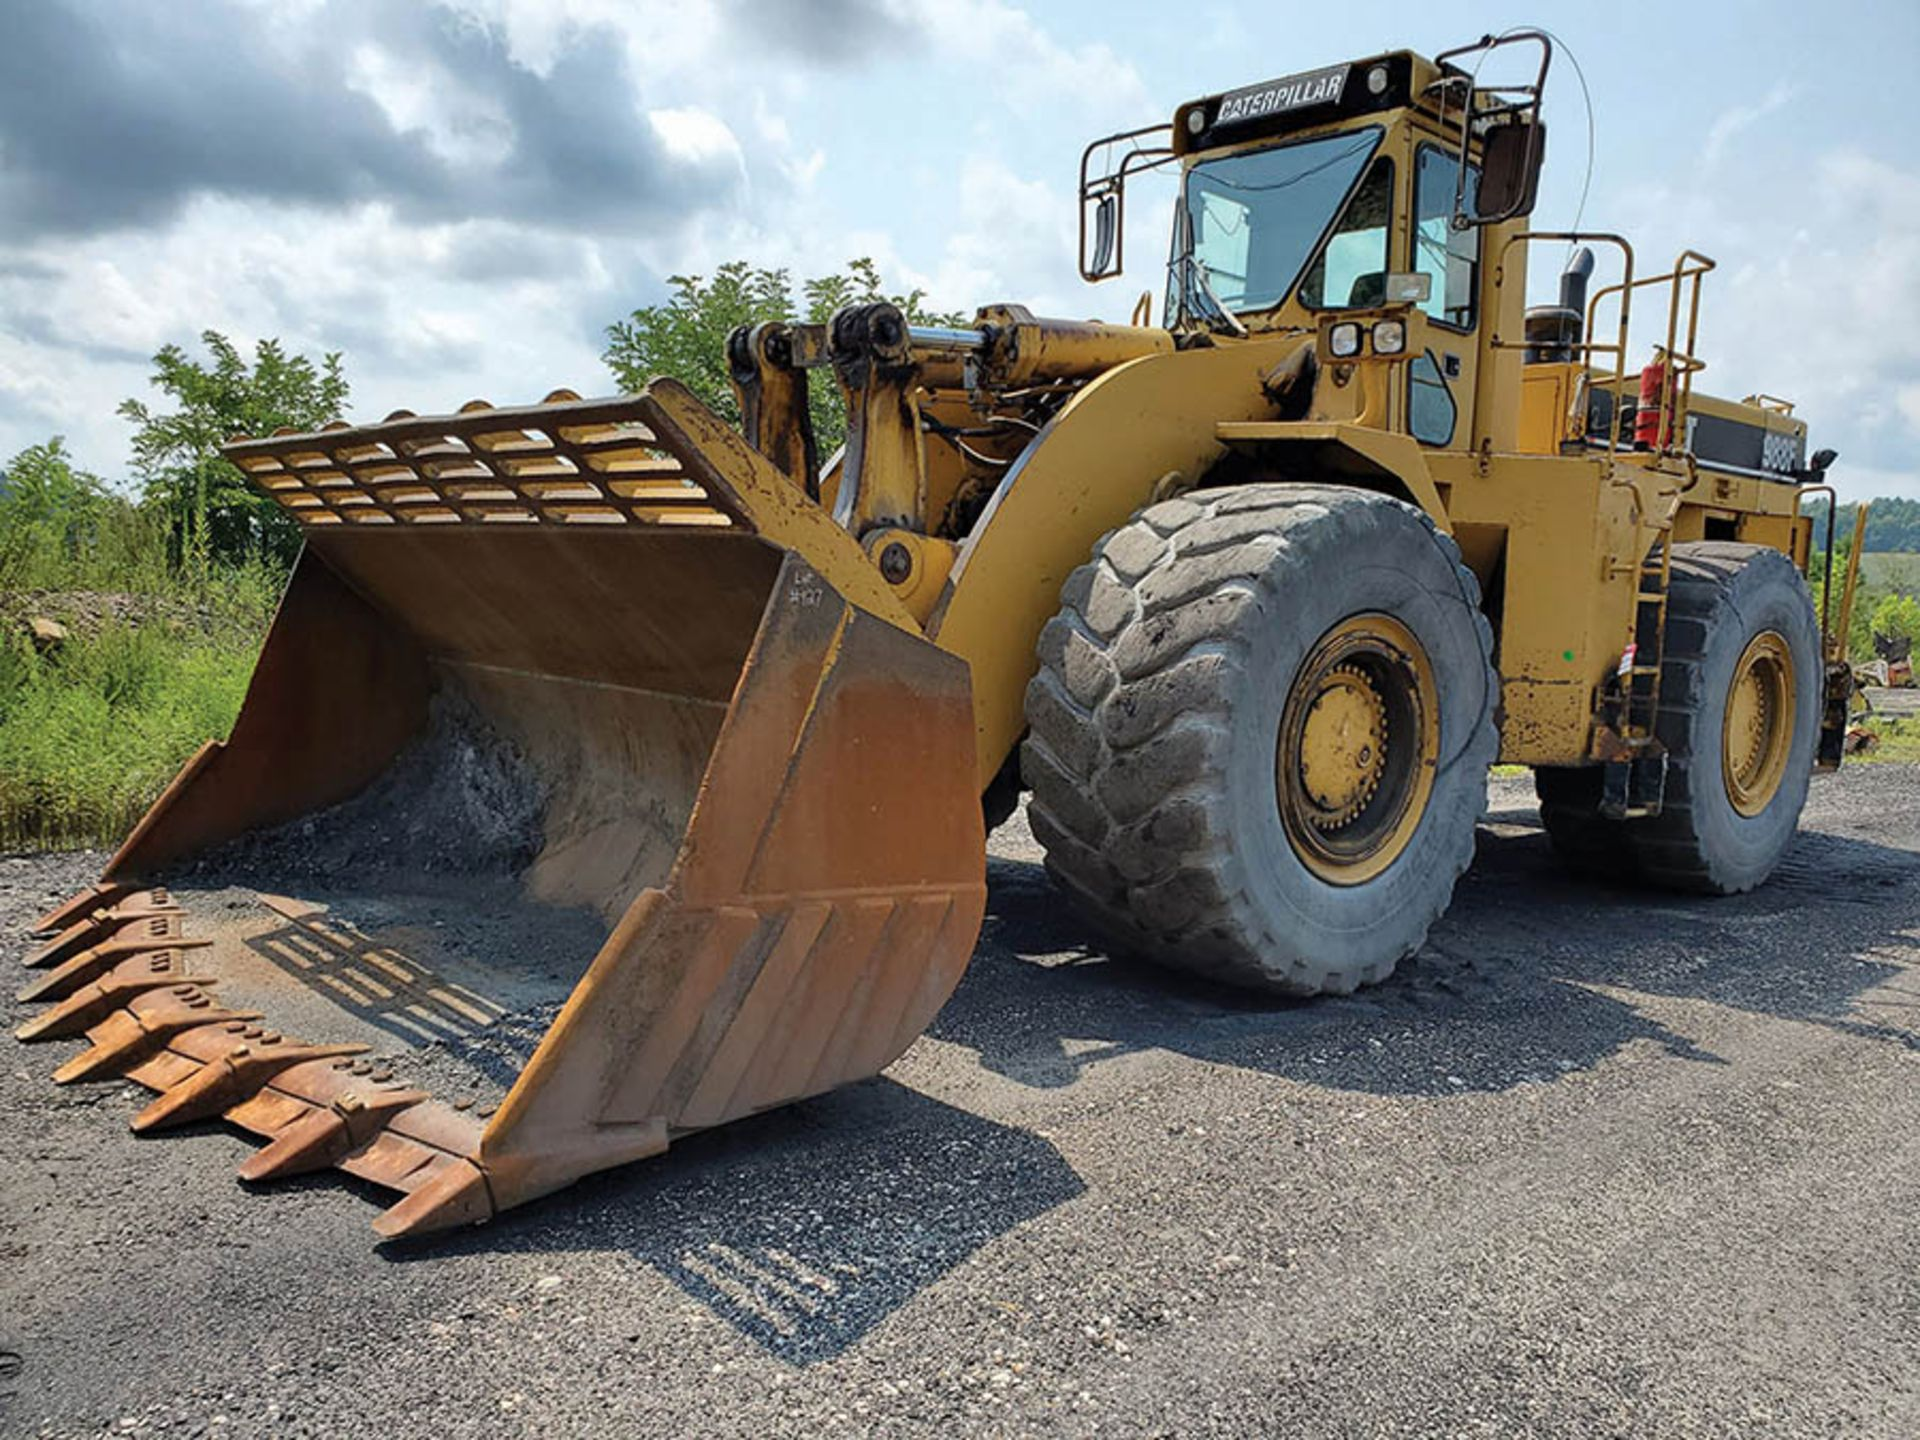 Lot 127 - CATERPILLAR 988F SERIES II WHEEL LOADER, S/N: 2ZR02398, 48,641 METERED HOURS, 35/65-33 TIRES, CAT V8